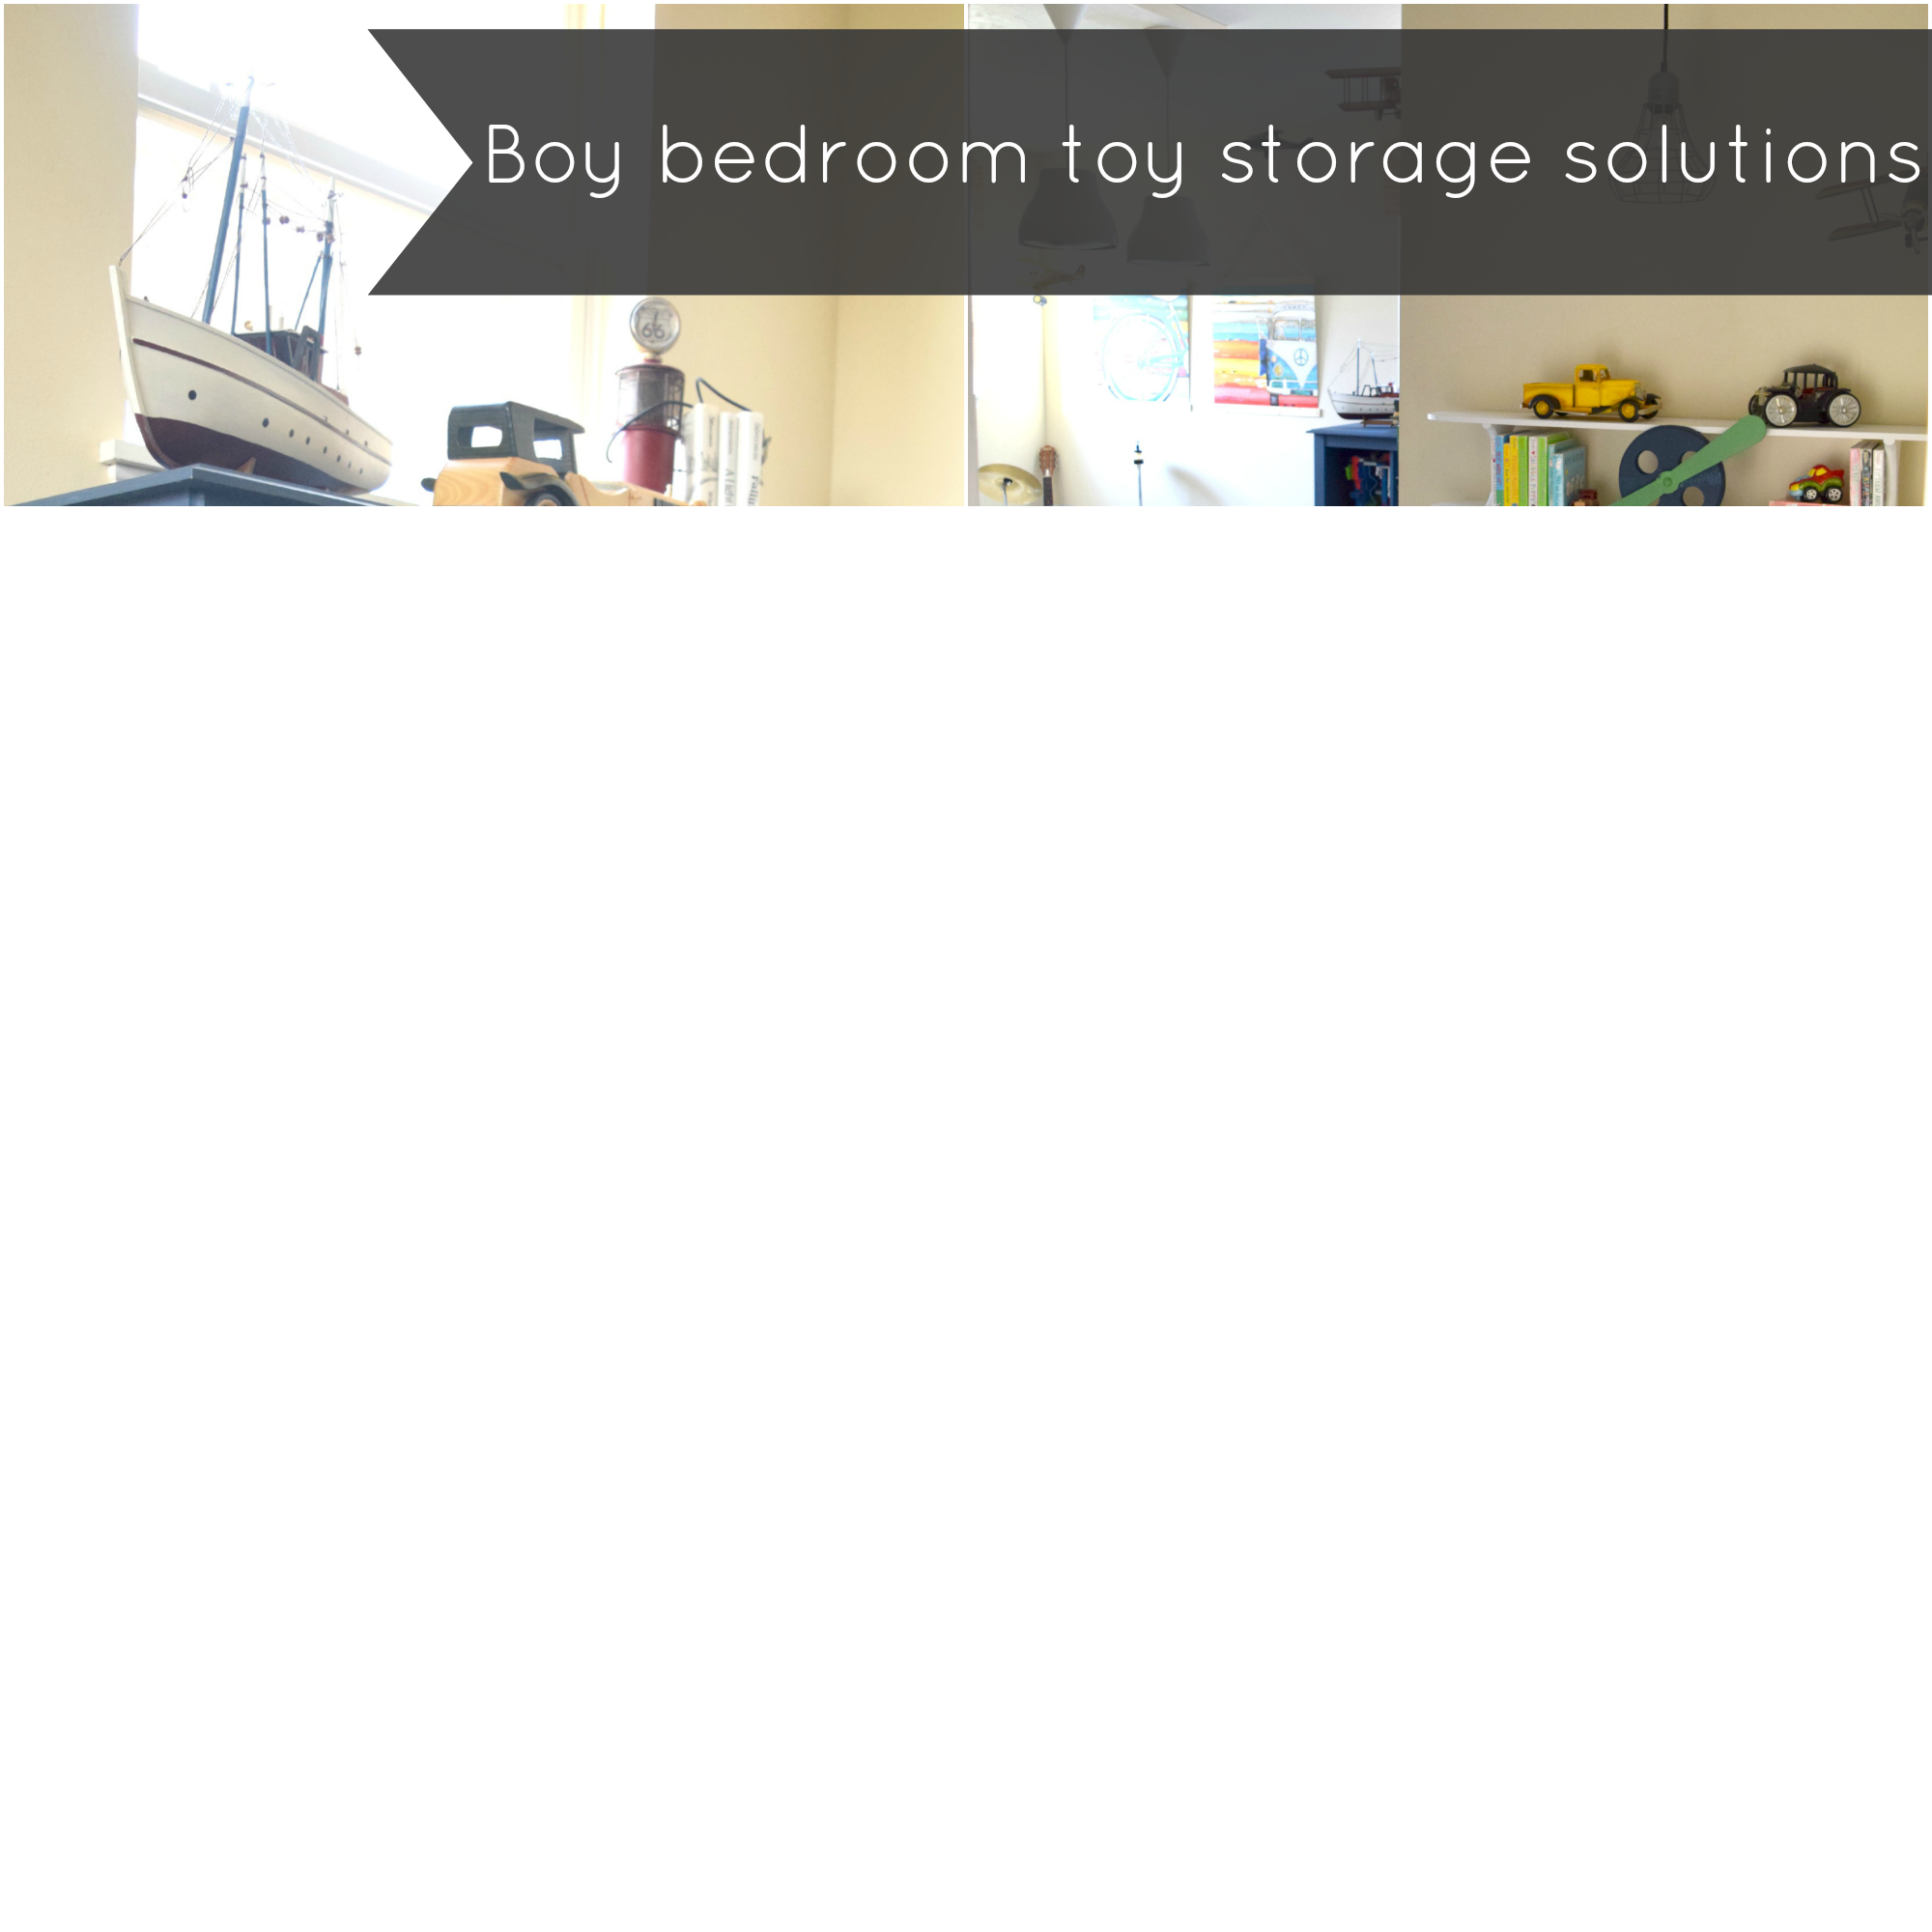 Boy bedroom toy storage solutions